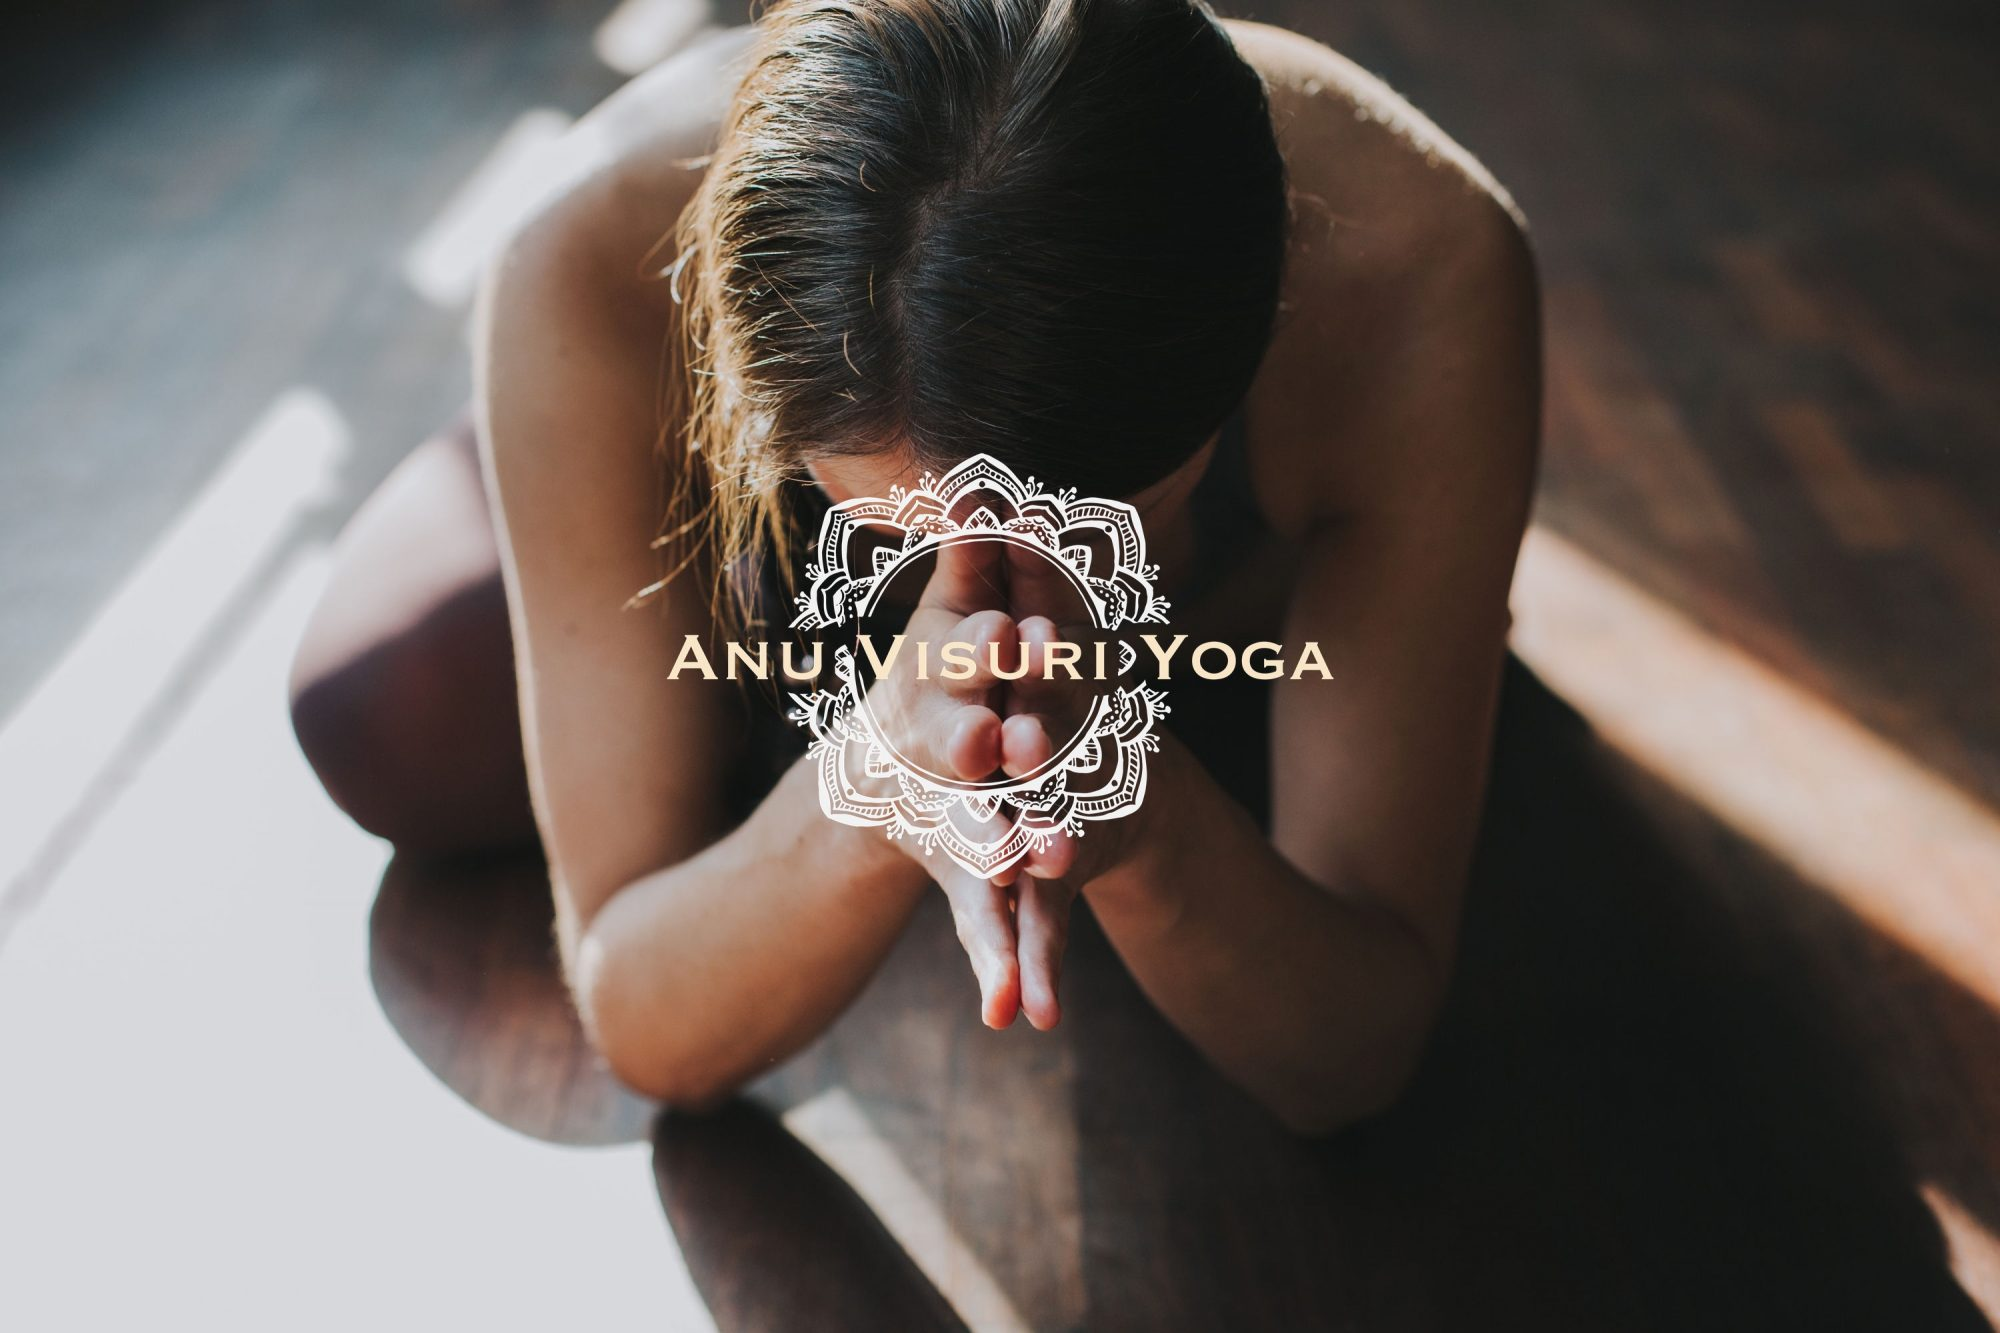 Anu Visuri Yoga